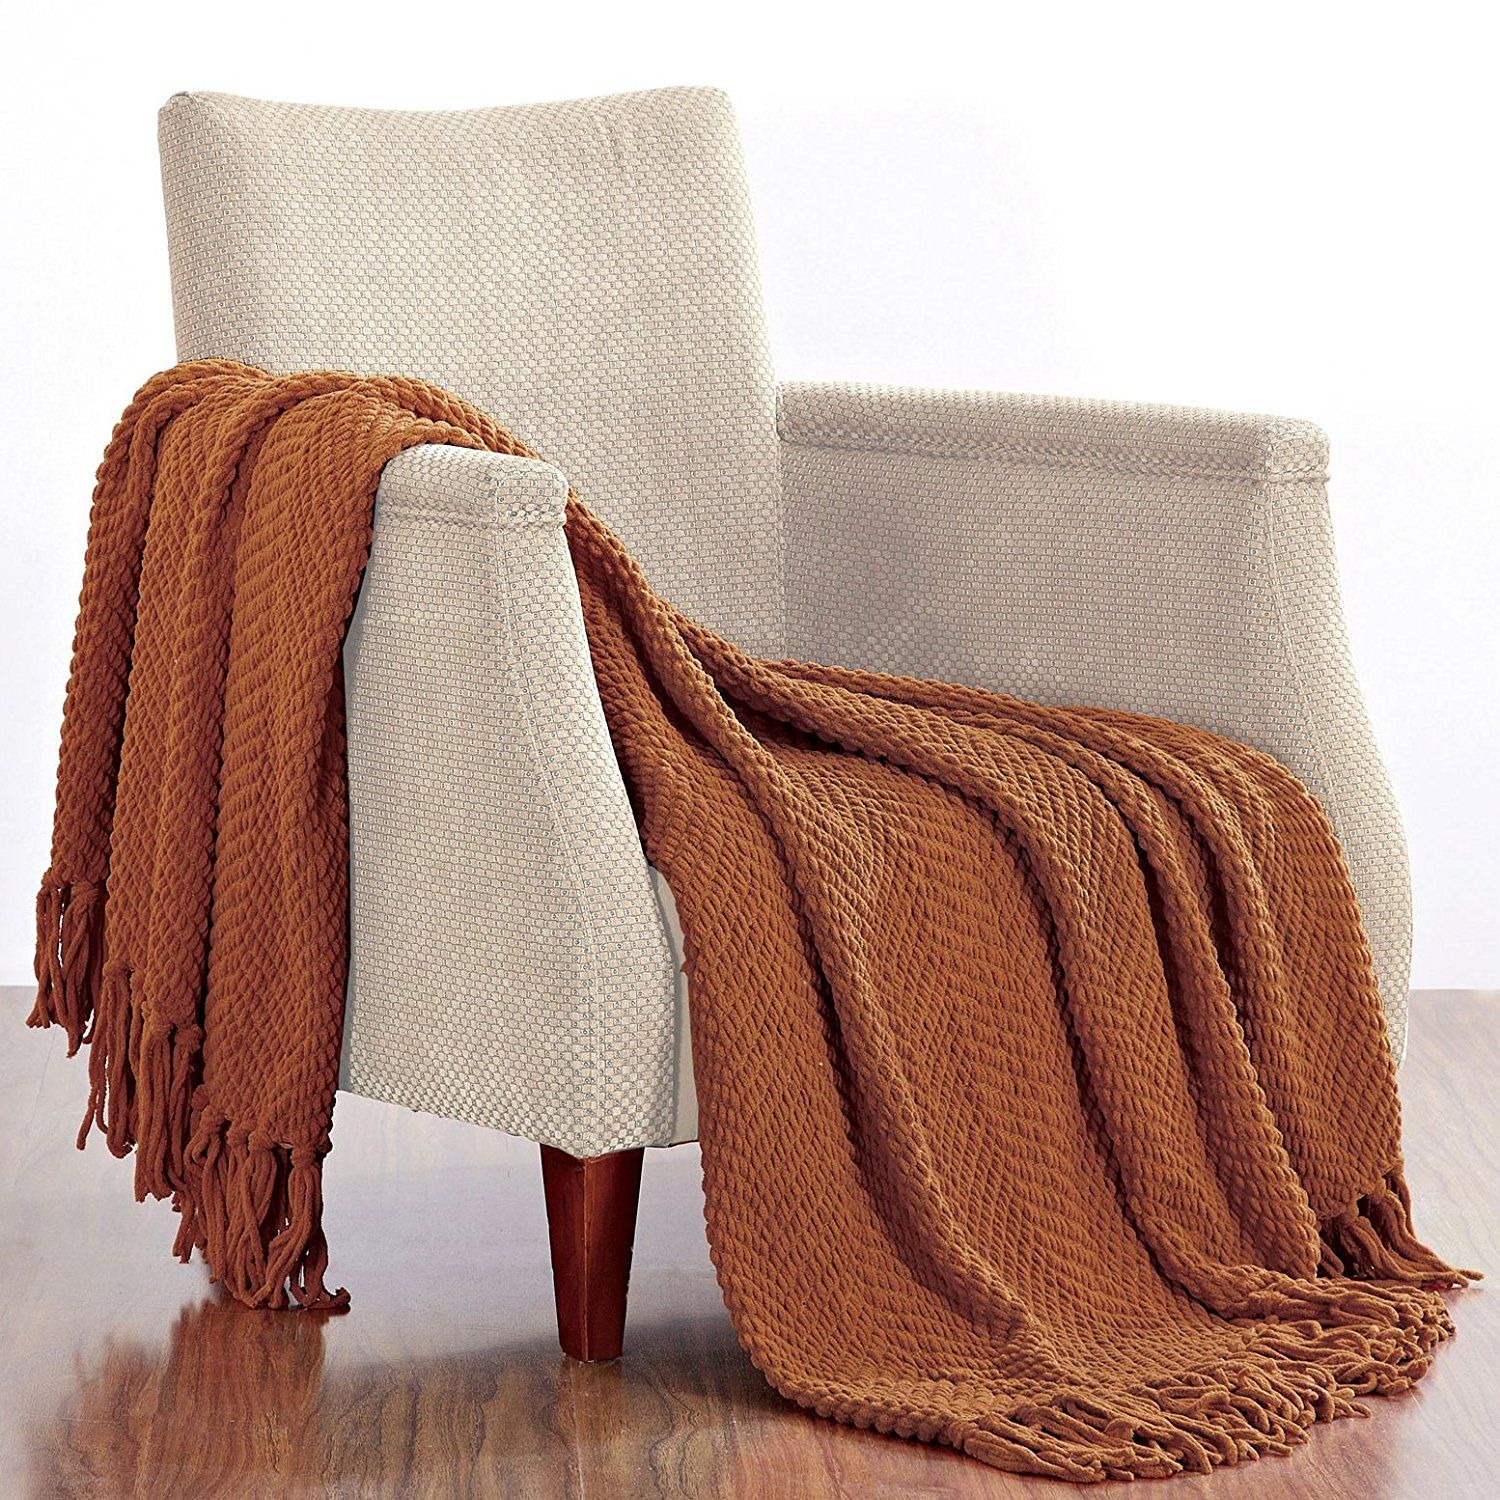 Throw Blankets For Couches Fascinating Boon Knitted Tweed Throw Couch Cover Blanket 50 X 60 Rust  Throw Design Inspiration